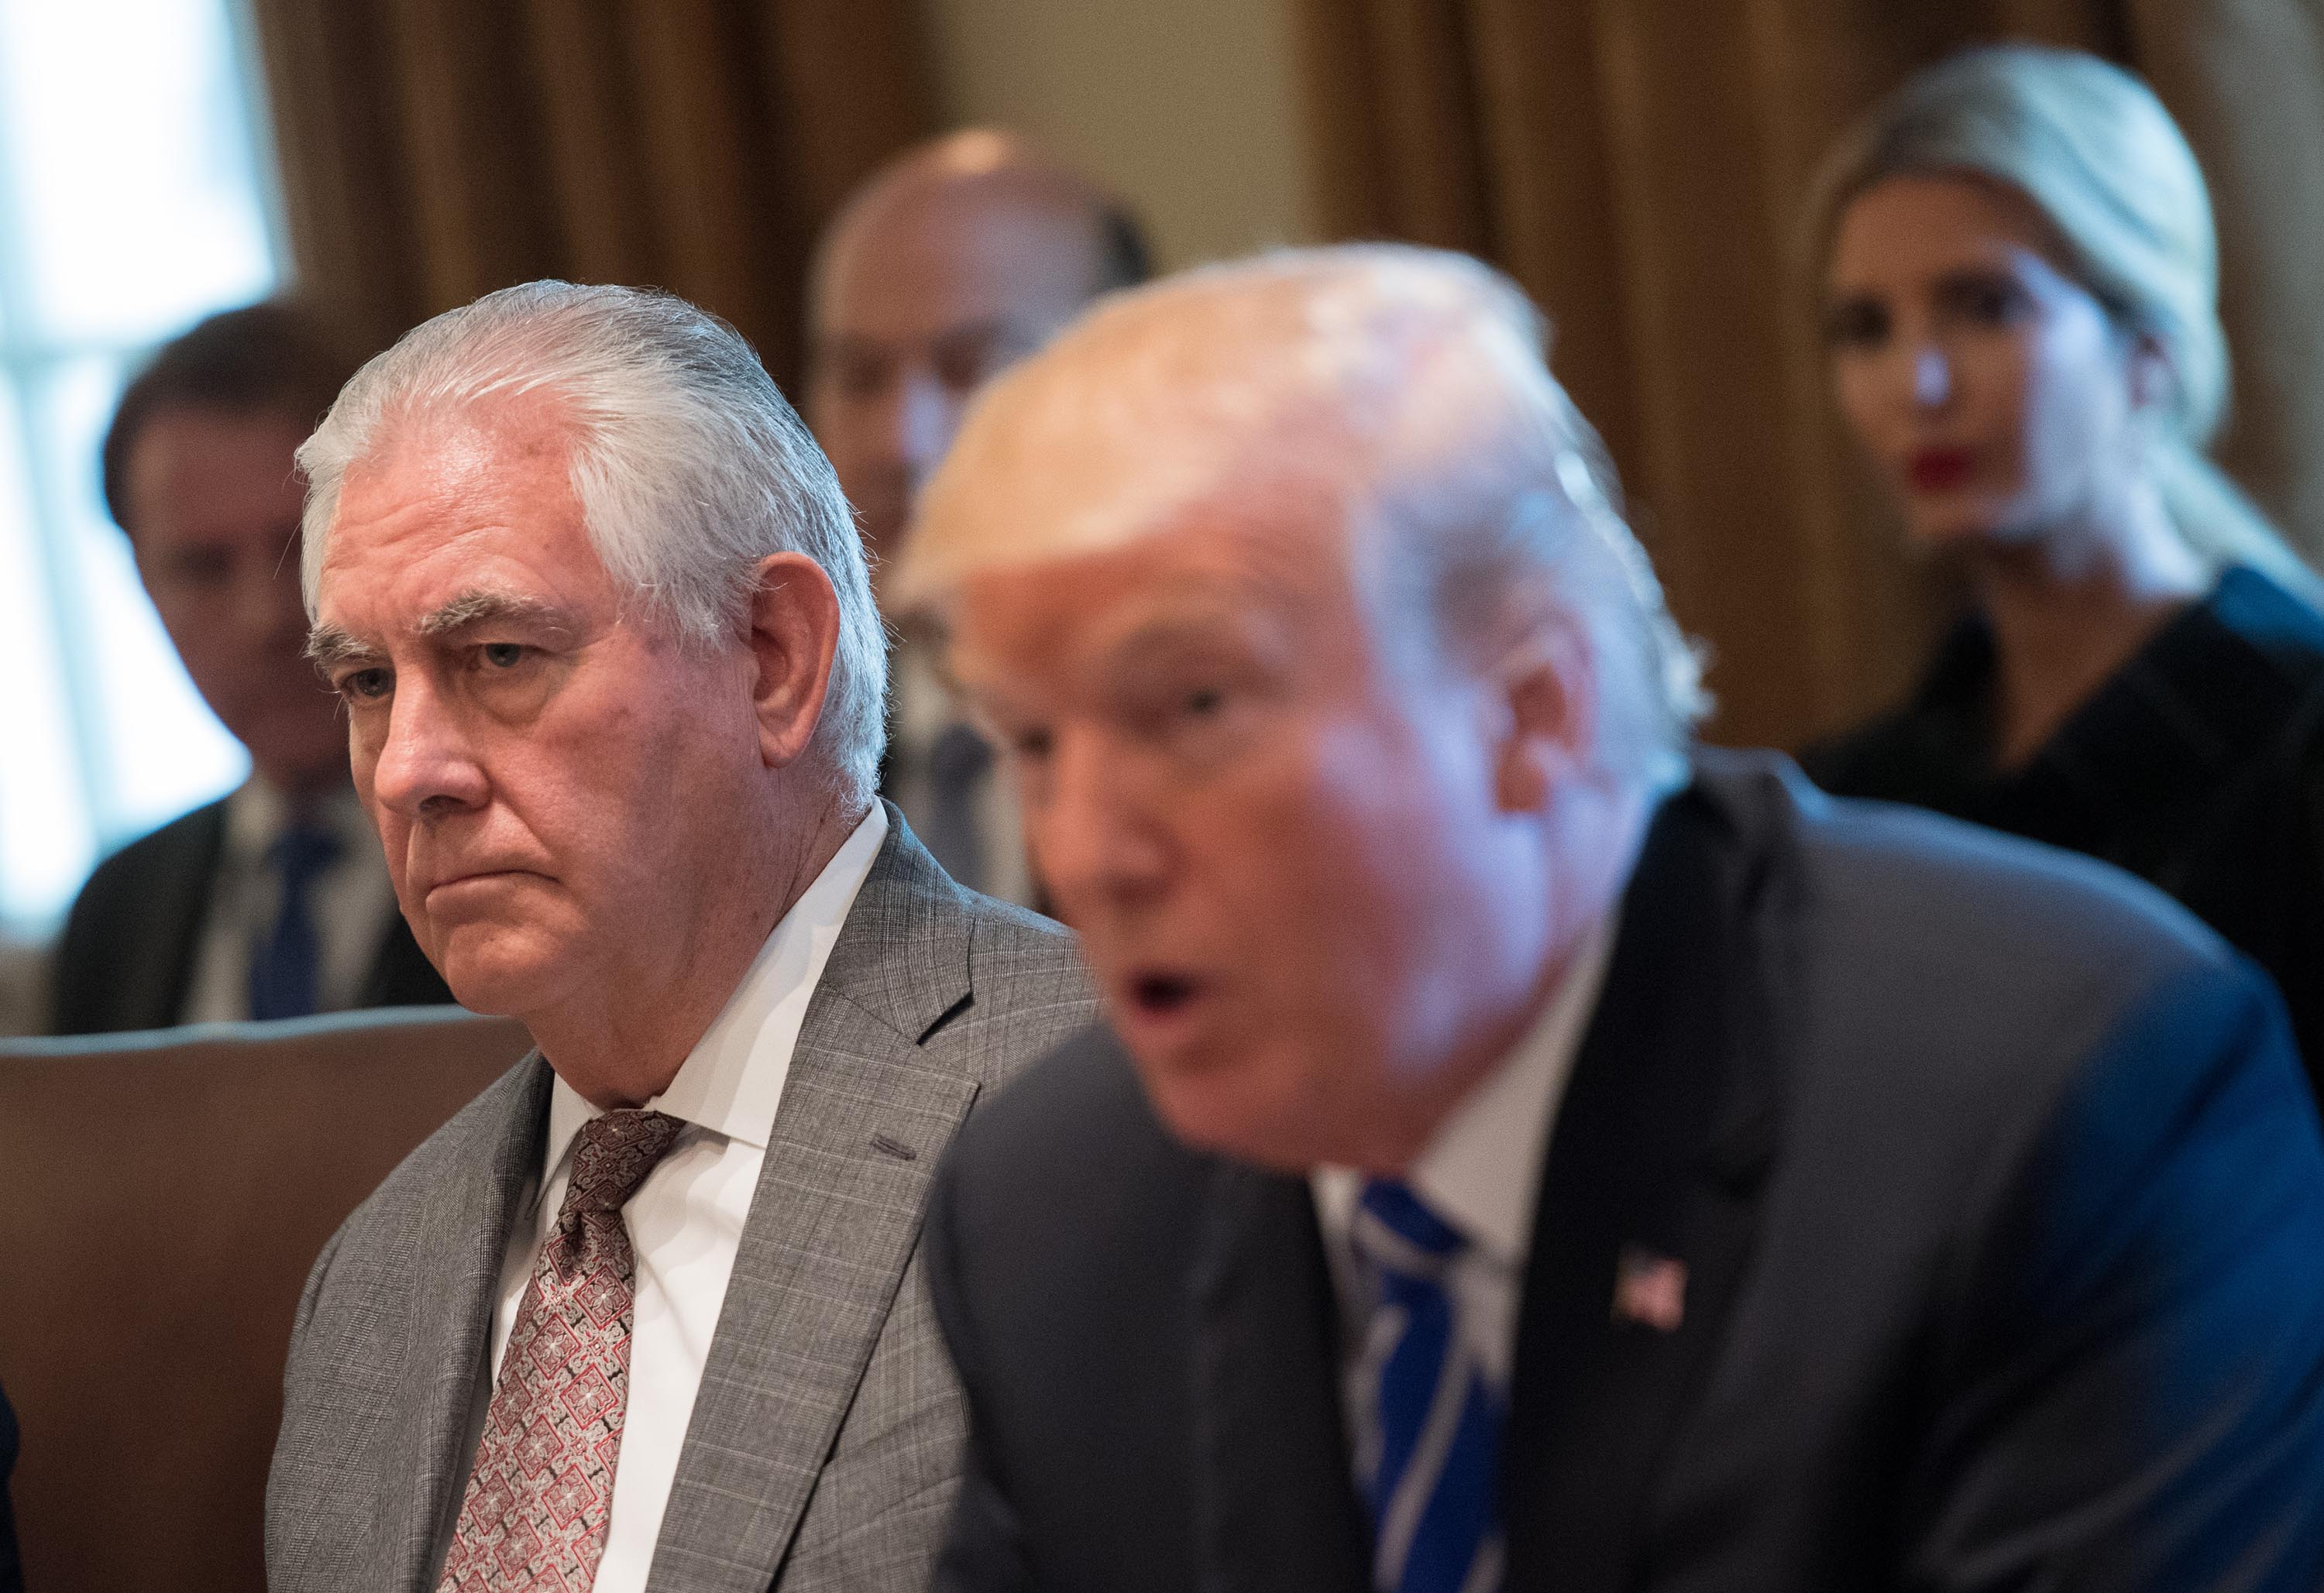 Tillerson slams Trump as Pompeo sings his praises